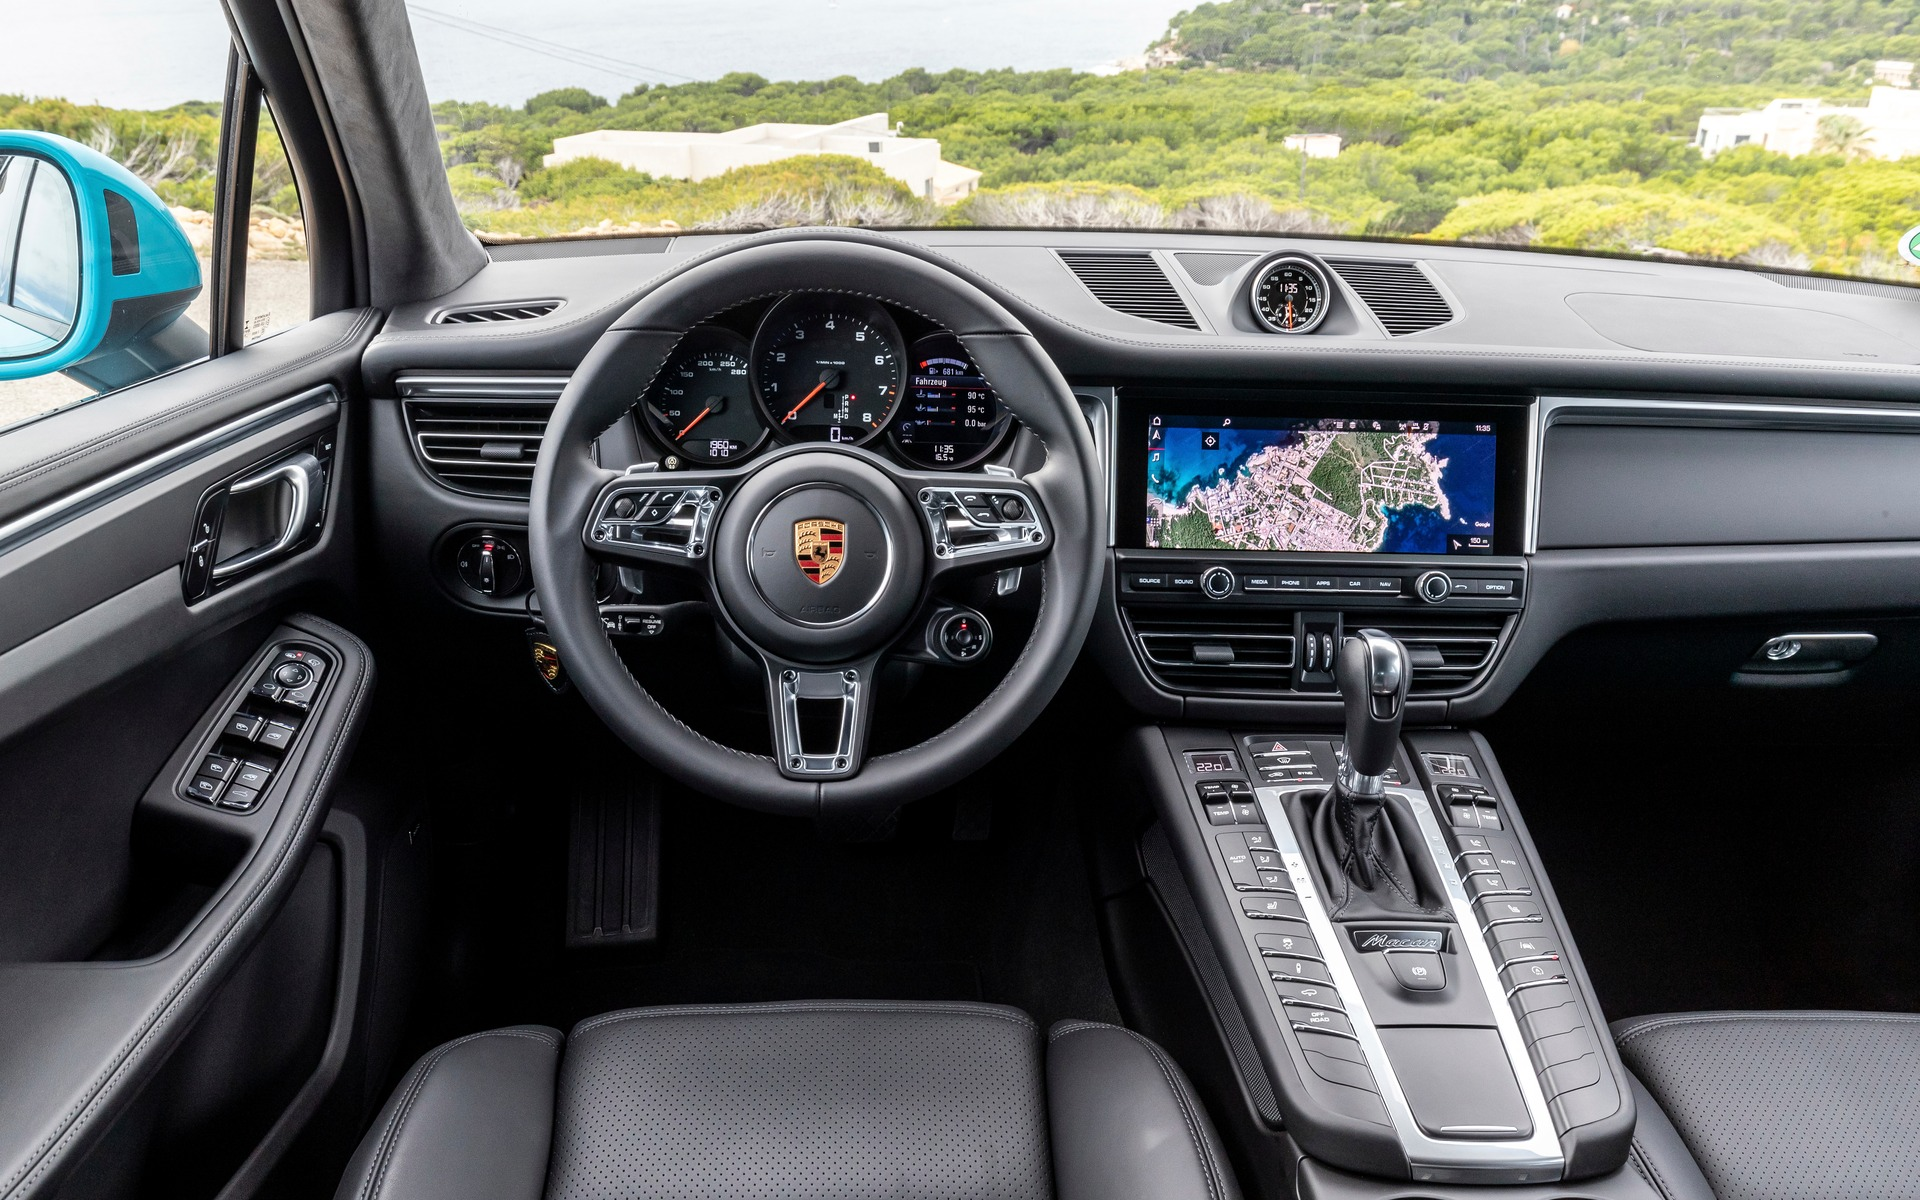 2019 Porsche Macan Best Seller Gets Updated With New Tech The Car Guide